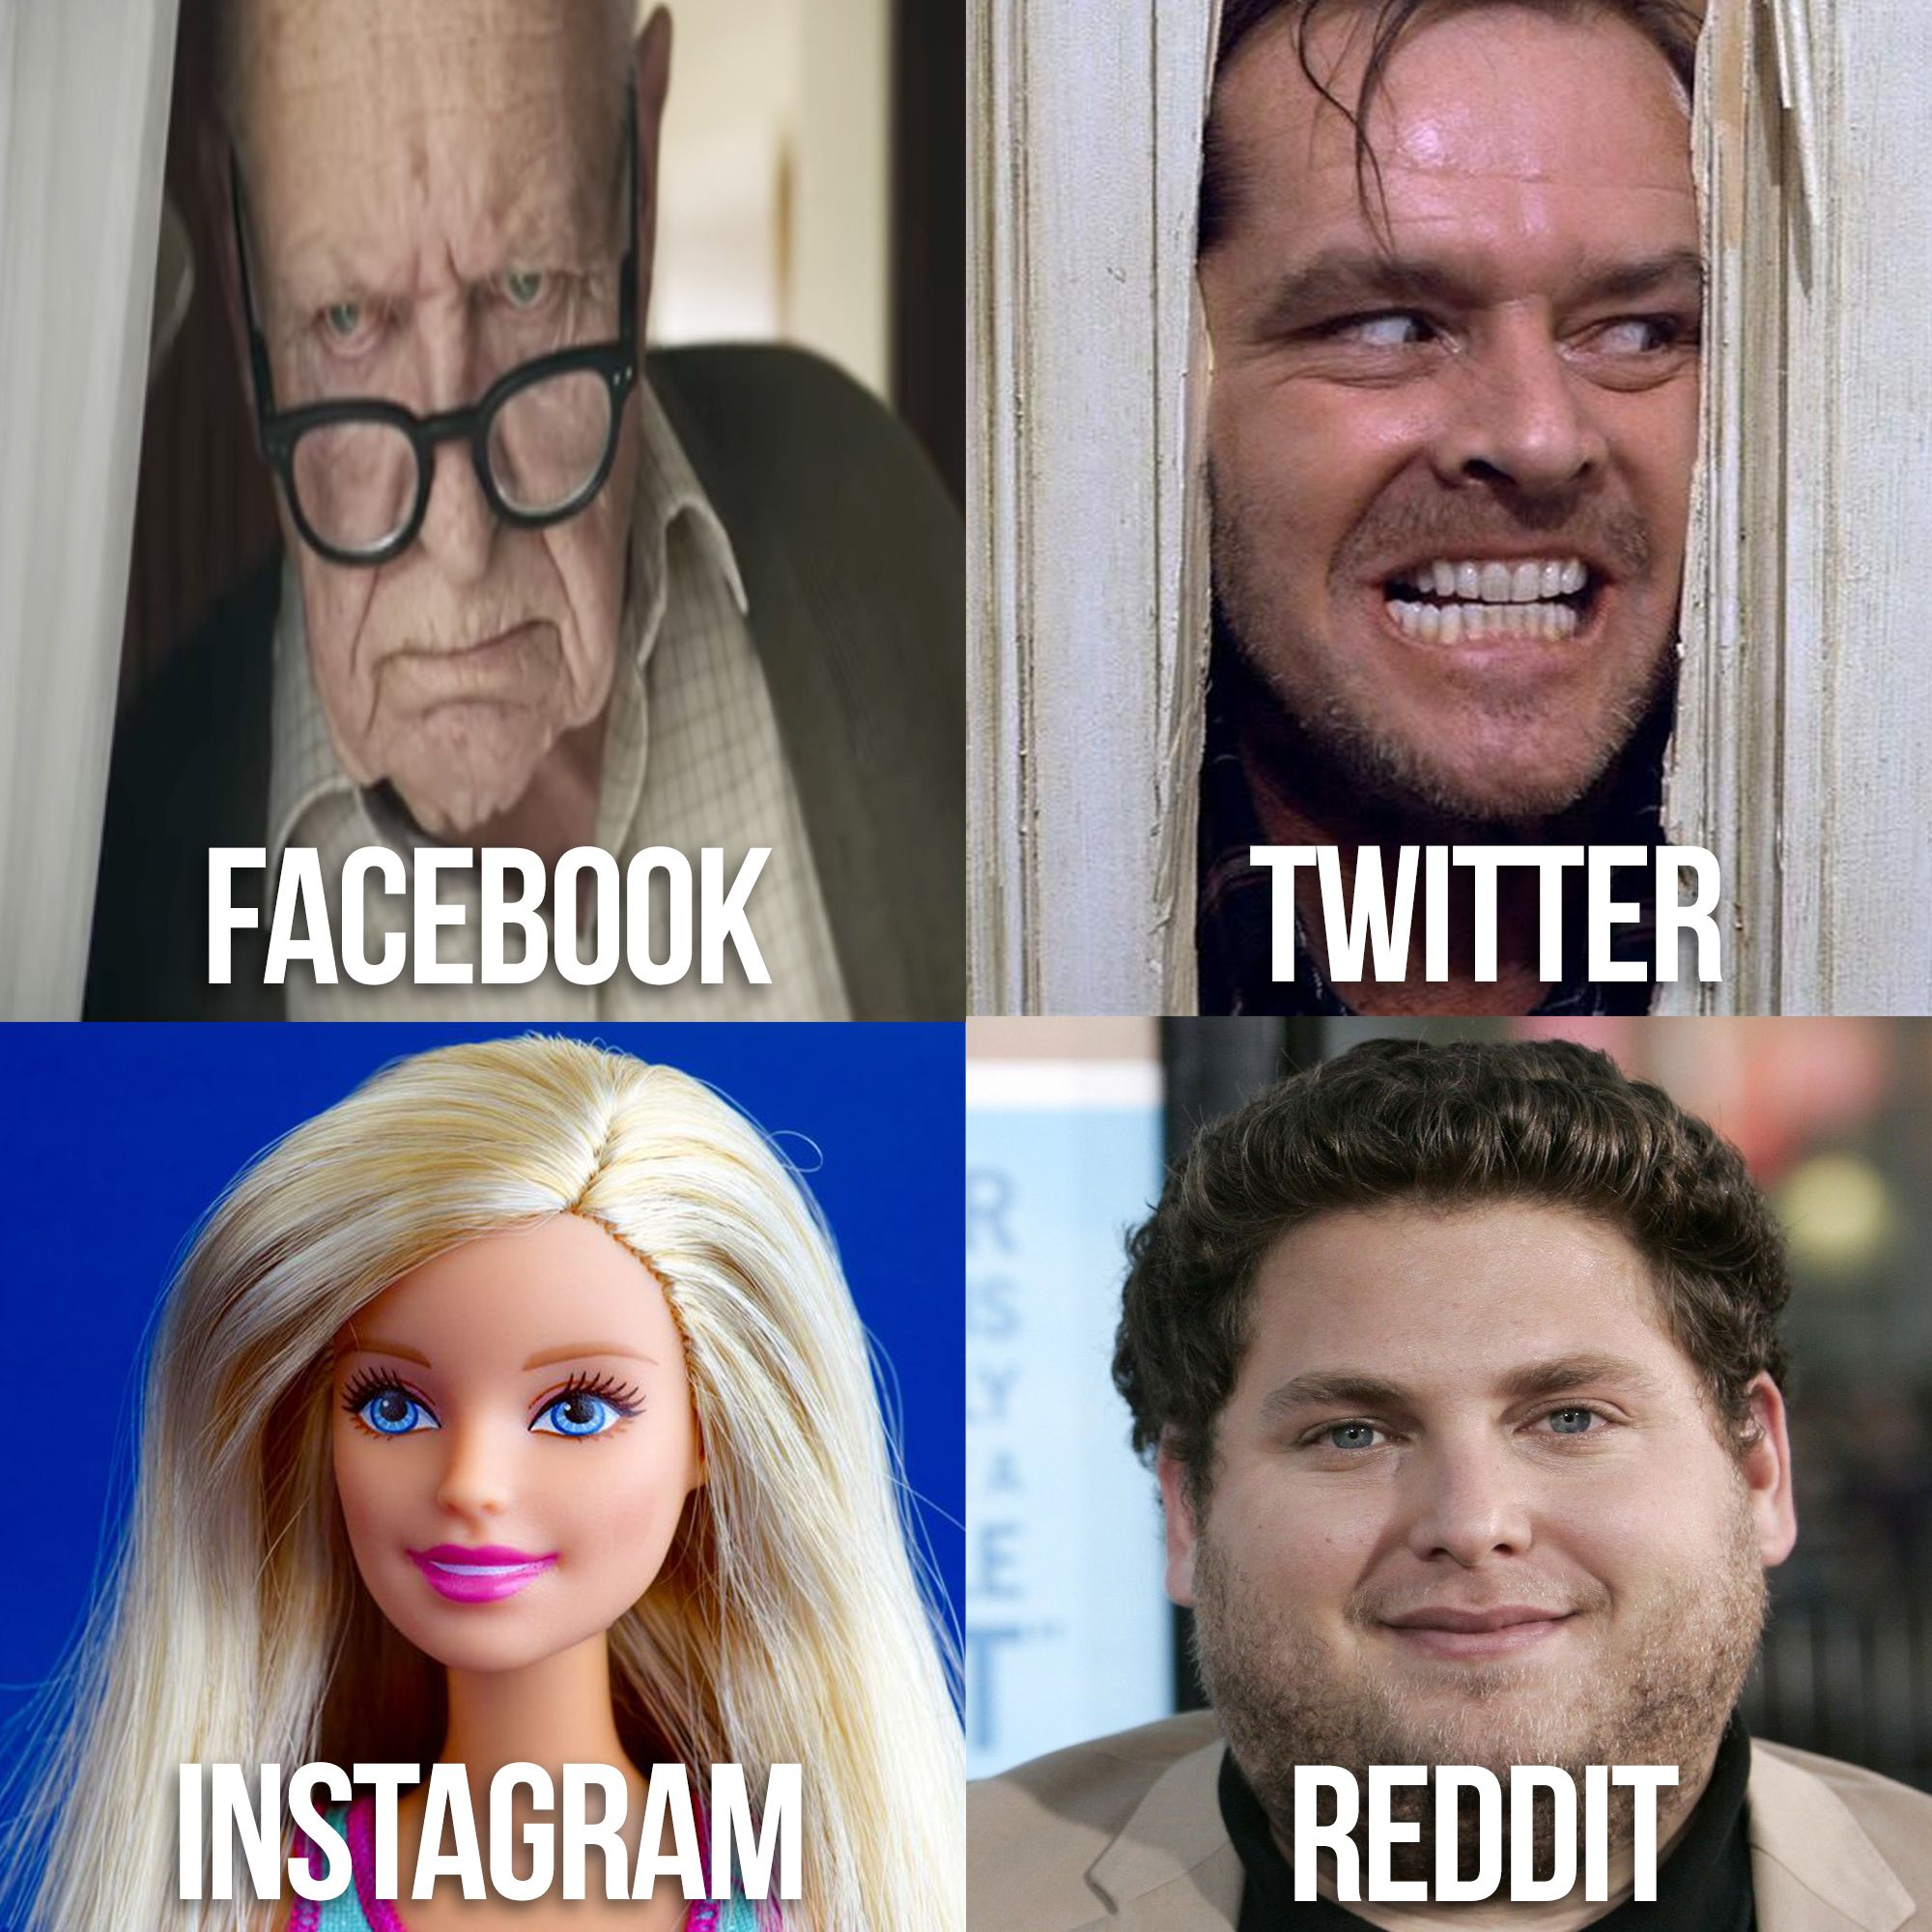 How I view people on different apps